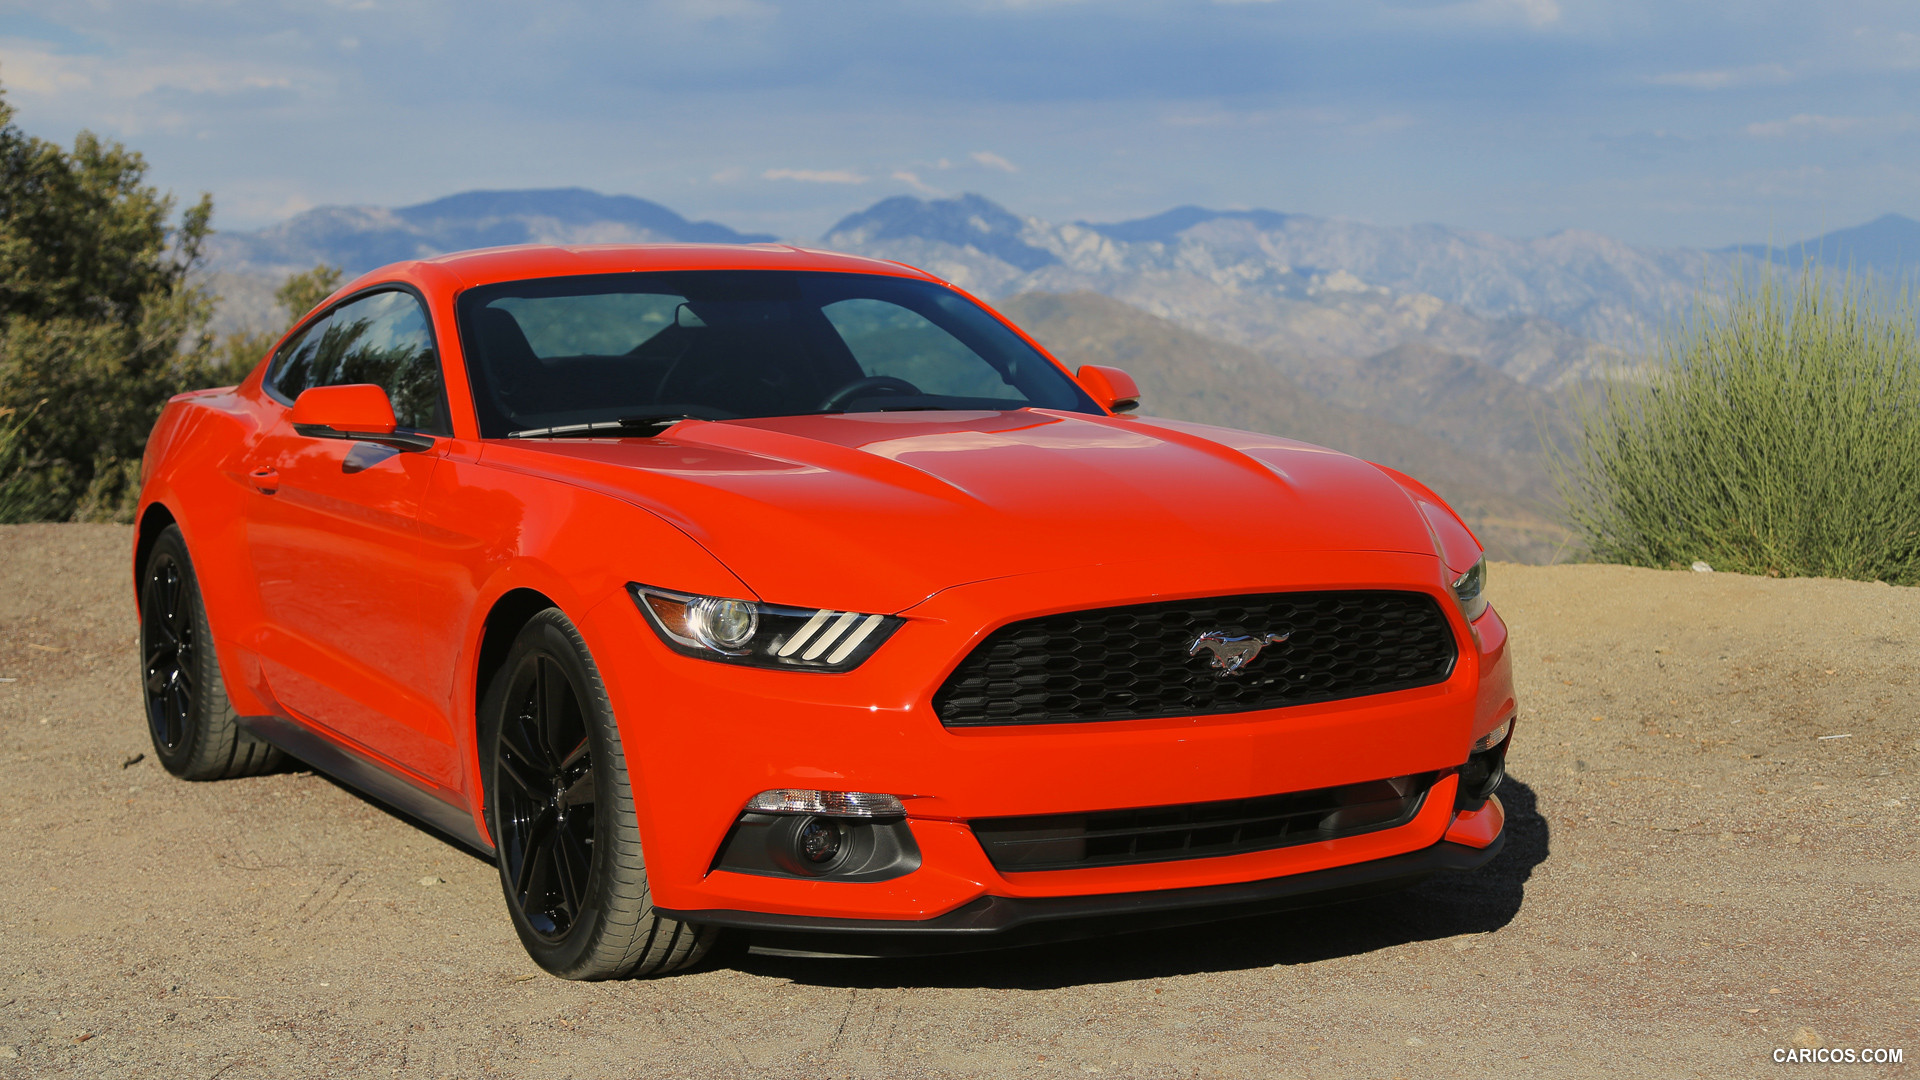 1920x1080 - Ford Mustang GT Wallpapers 25